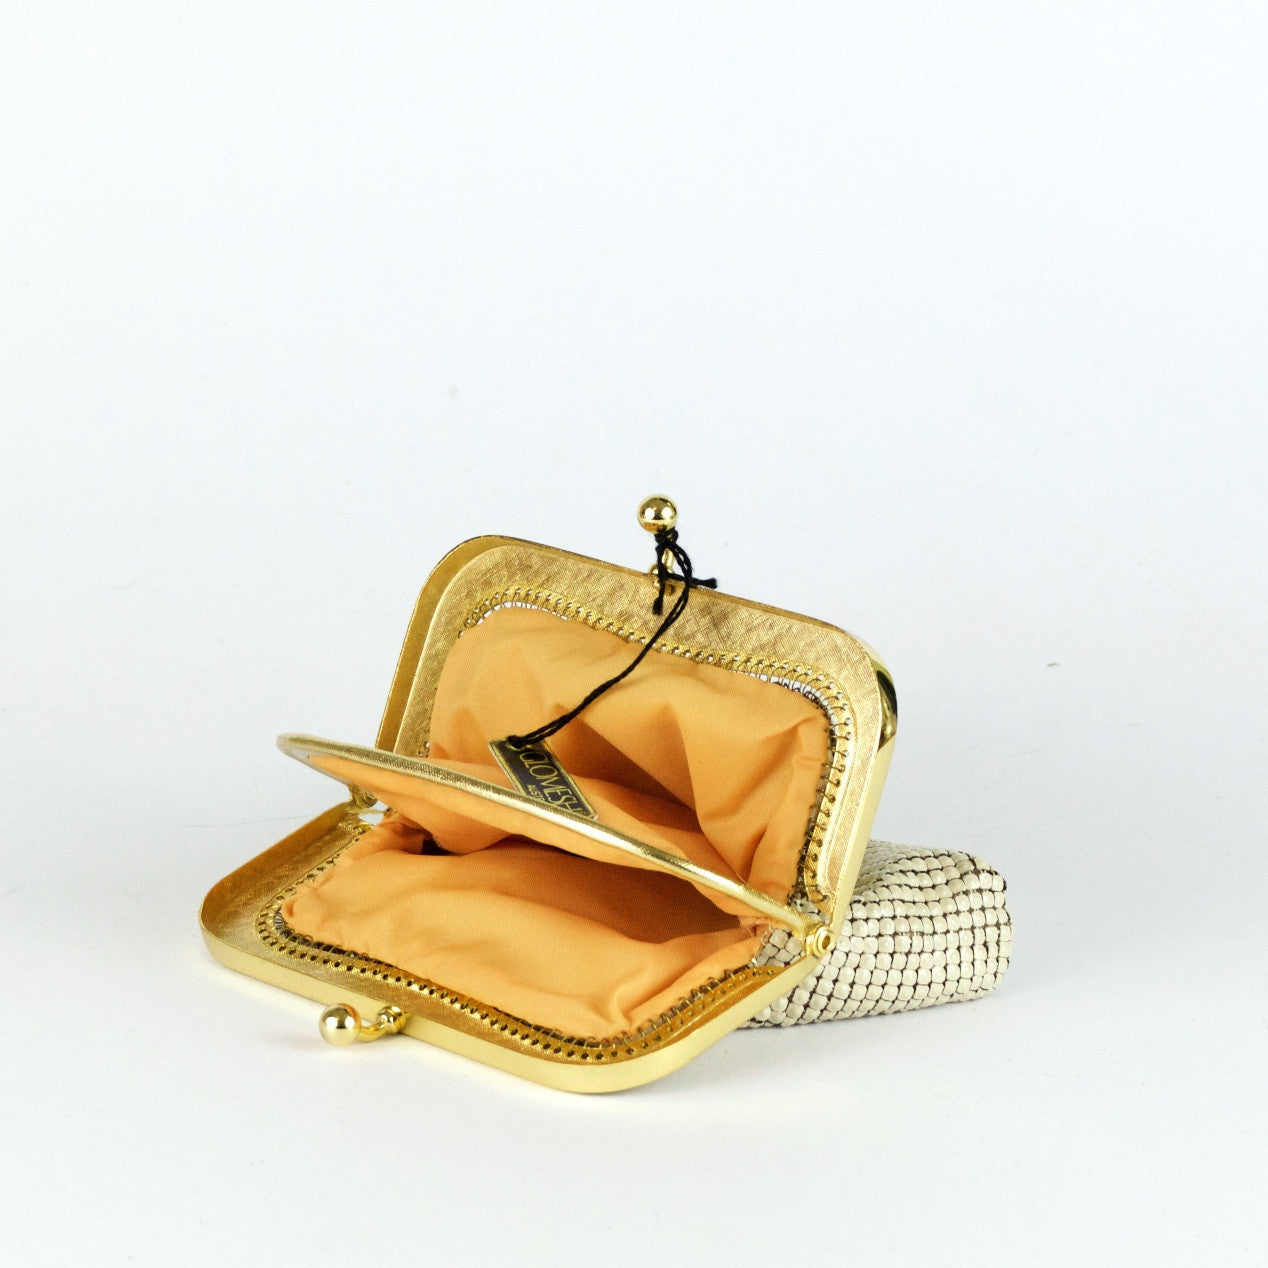 Vintage off-white metal mesh coin purse by Glomesh, view purse open